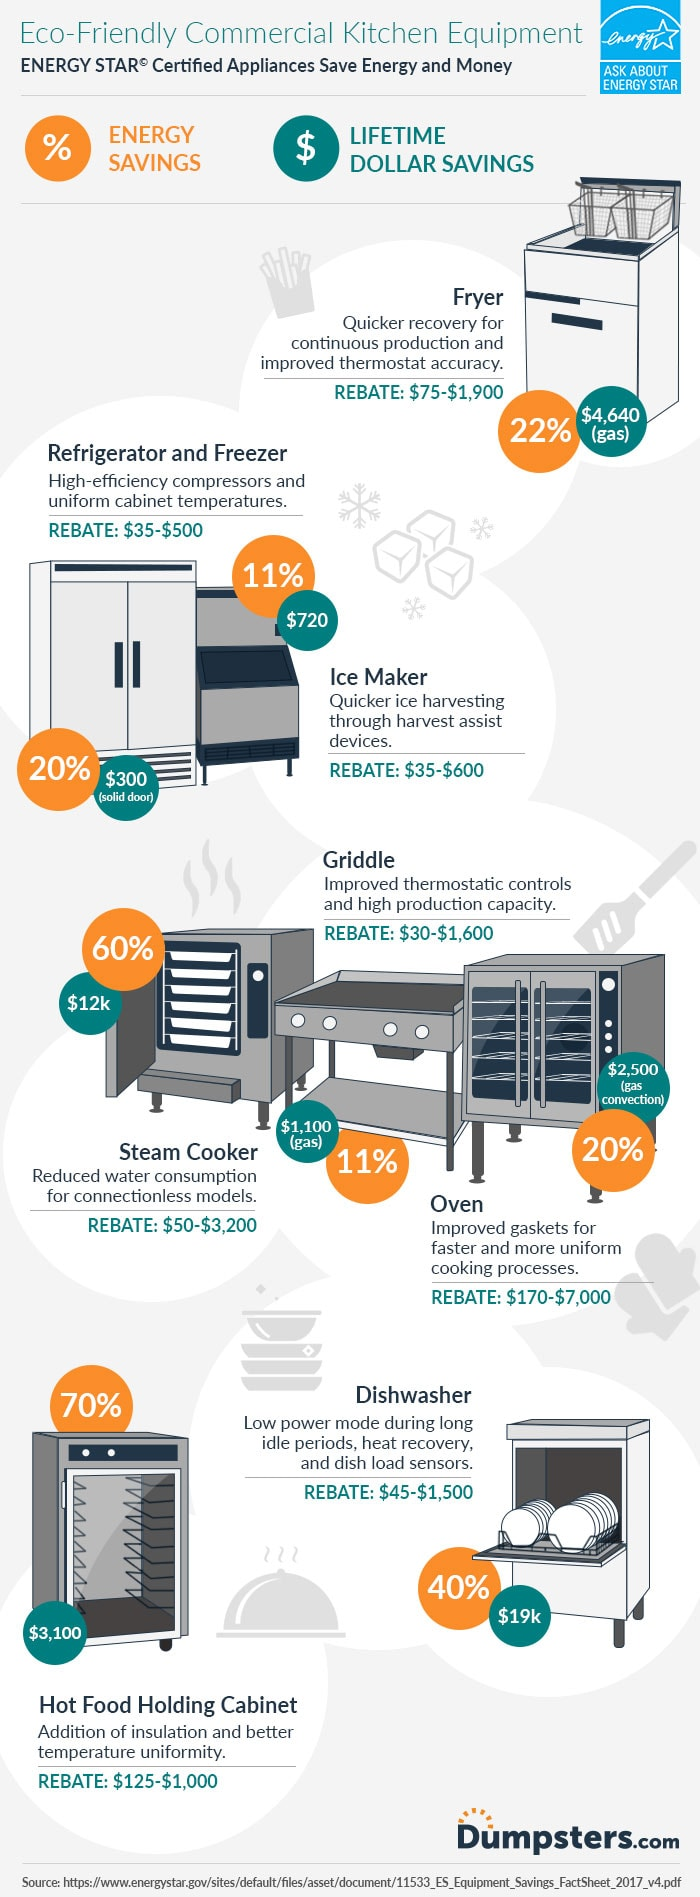 Eco-Friendly Commercial Kitchen Equipment Infographic